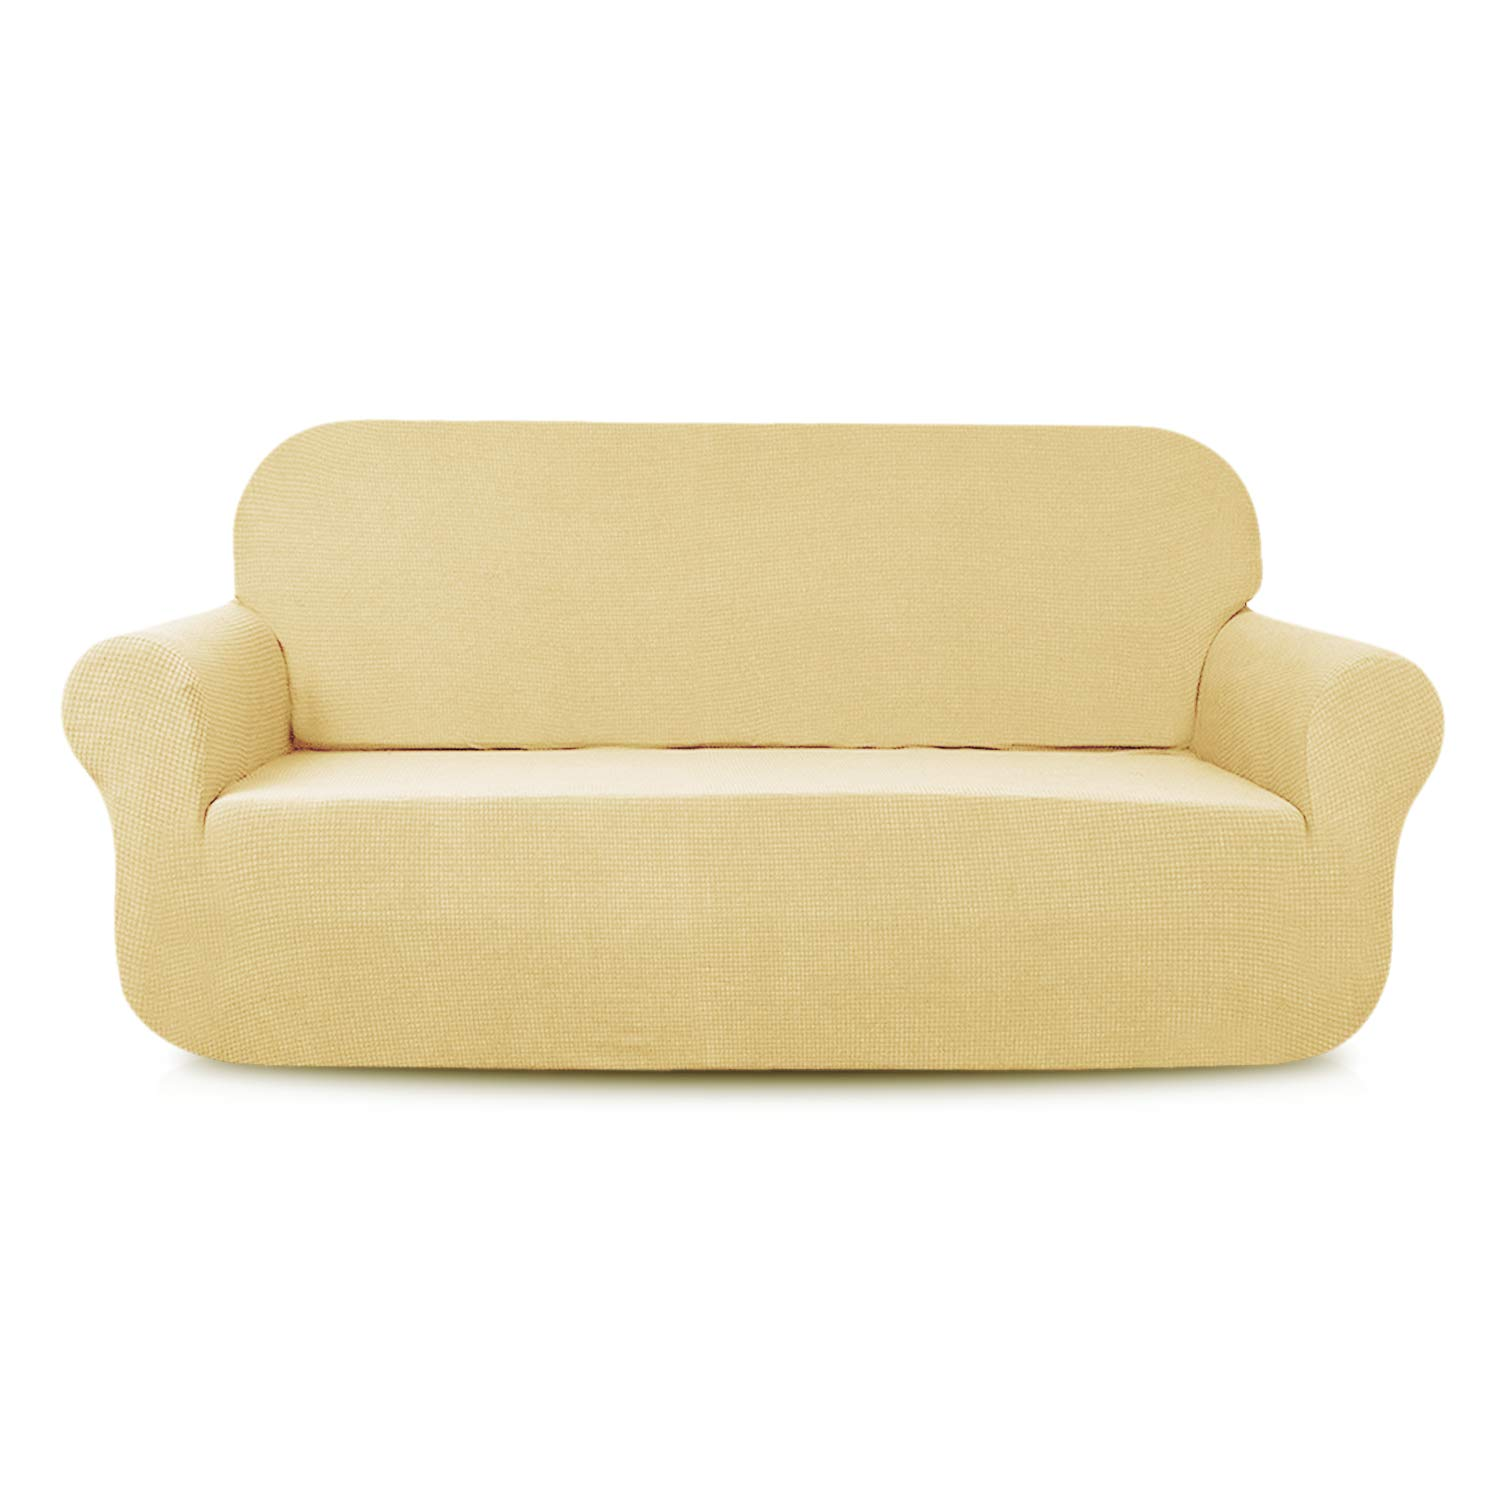 Enjoyable Aujoy Stretch Loveseat Cover Water Repellent Couch Covers Dog Cat Pet Proof Sofa Love Seat Slipcovers Protectors Loveseat Beige Download Free Architecture Designs Scobabritishbridgeorg